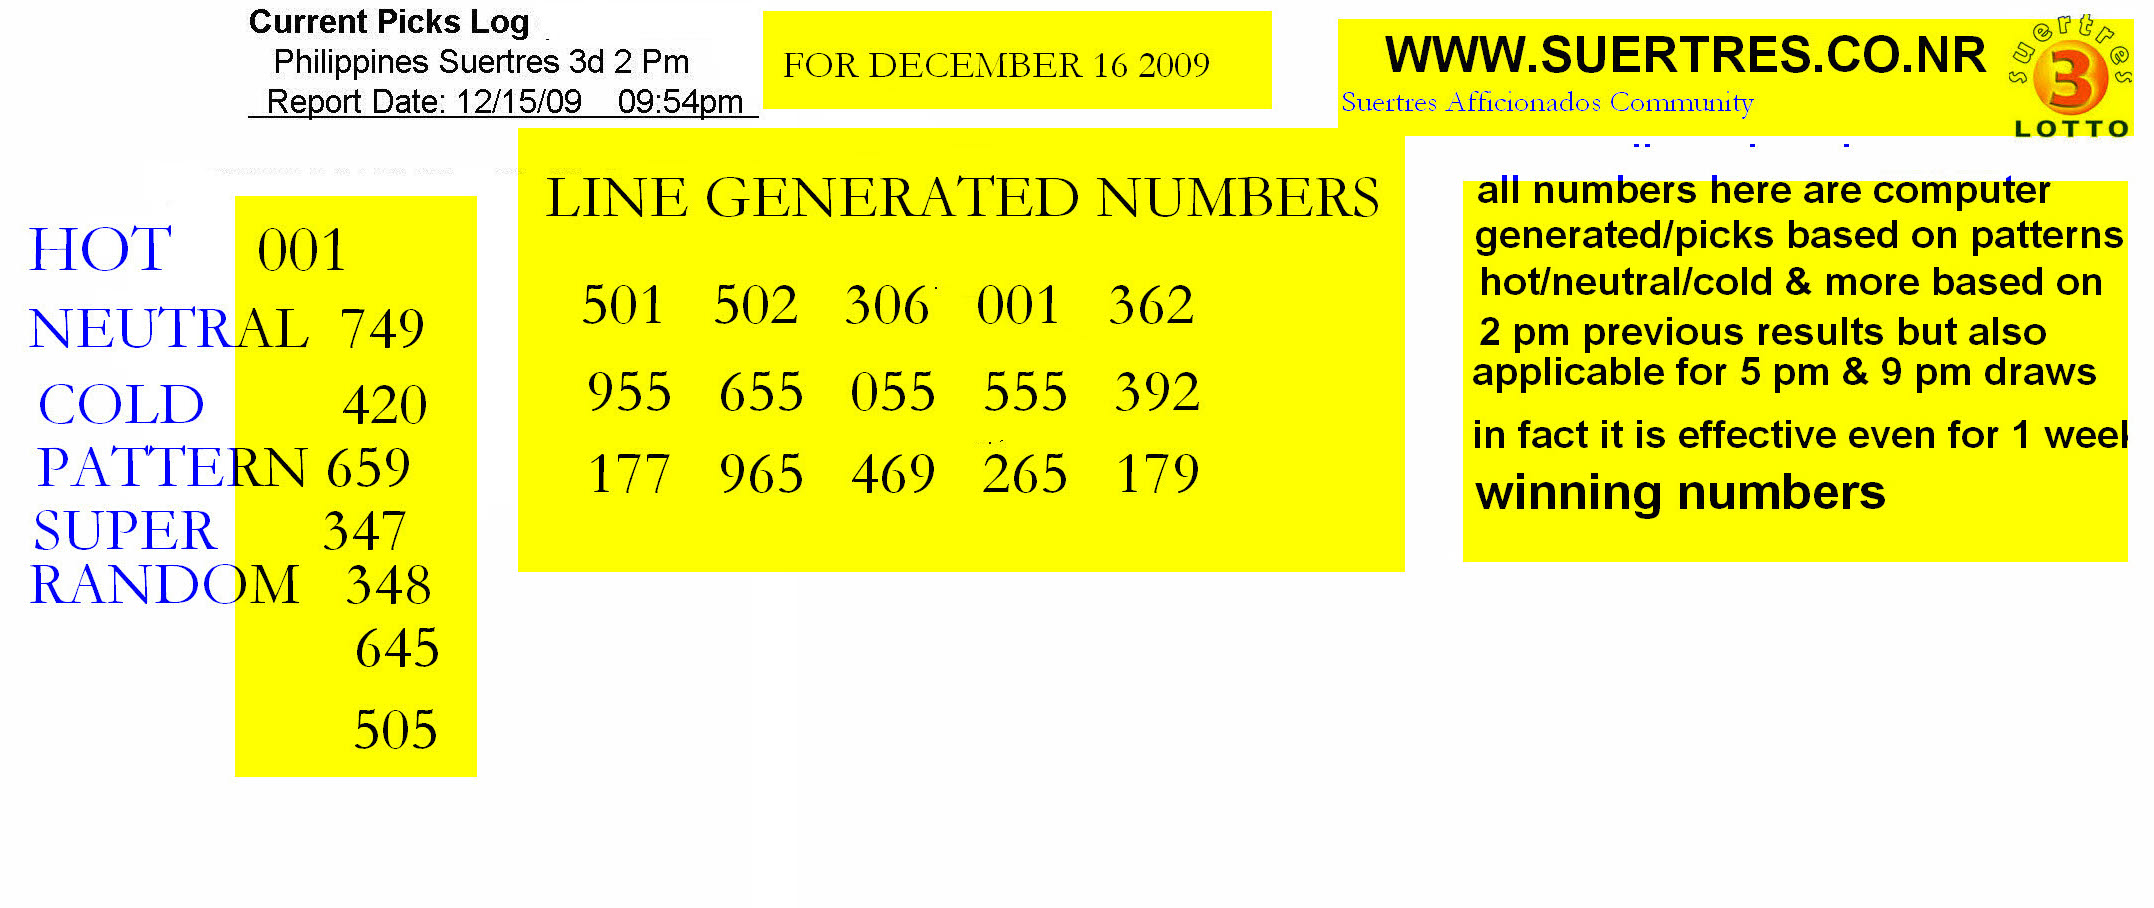 Topic: december 16, 2009 probables - Suertres/Swertres2154